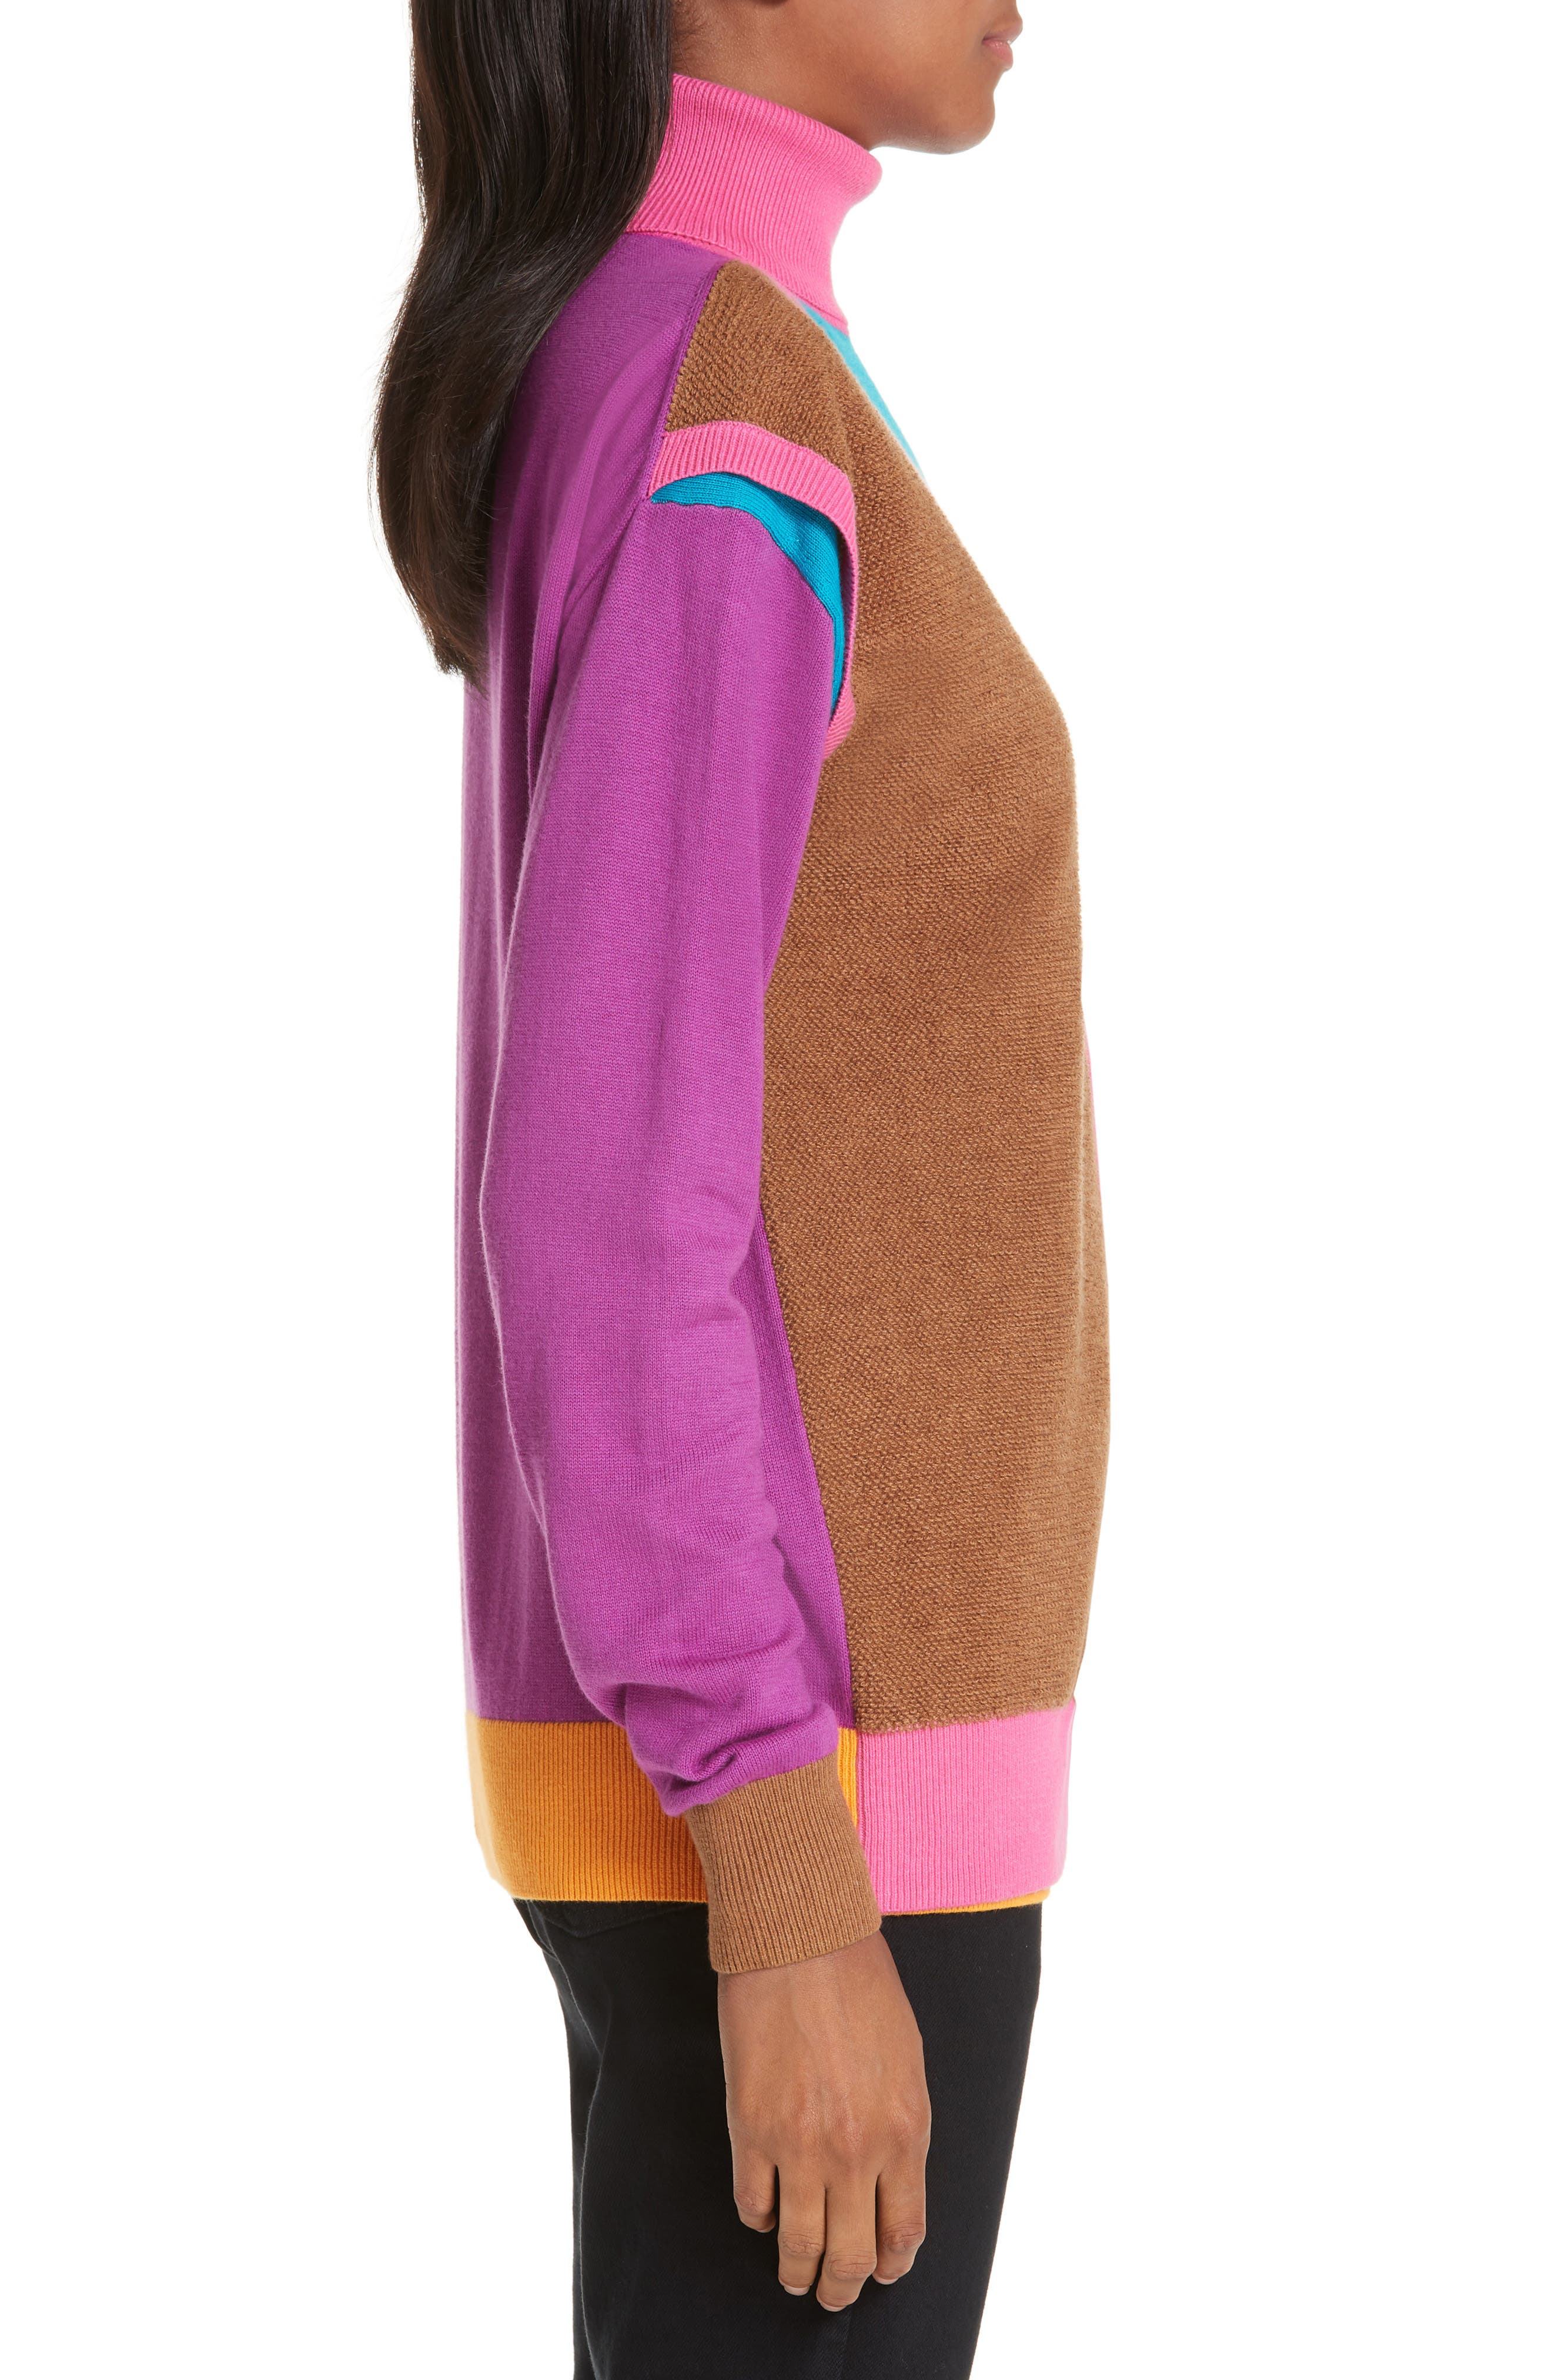 Layered Cotton & Cashmere Sweater,                             Alternate thumbnail 3, color,                             PINK/BLUE/SAND COMBO